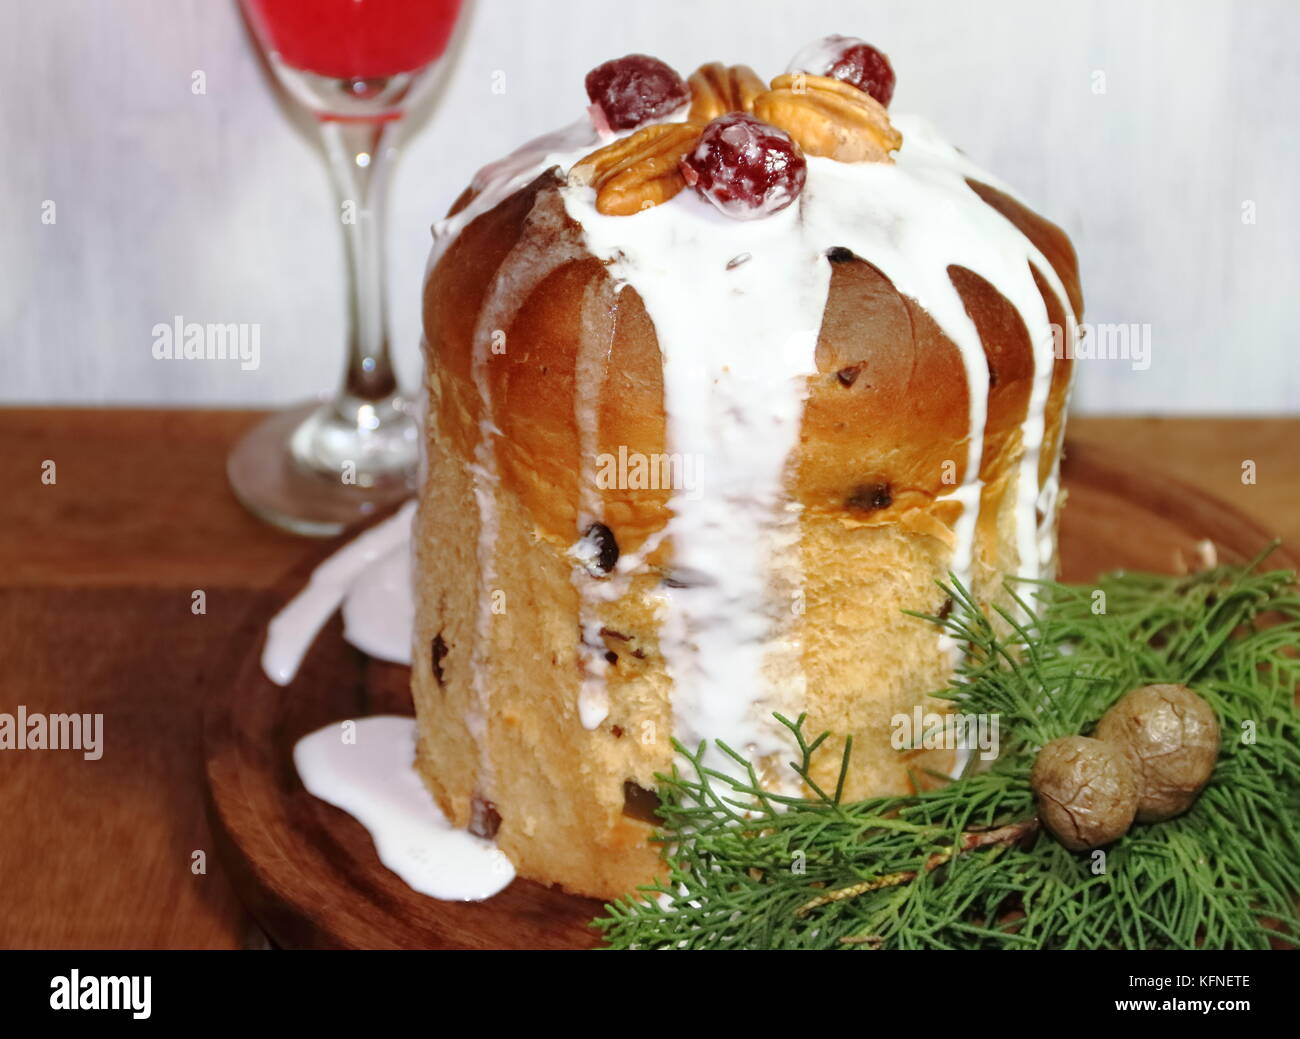 sweet bread Christmas pudding cin dried and glazed fruits and sparkling beverages - Stock Image